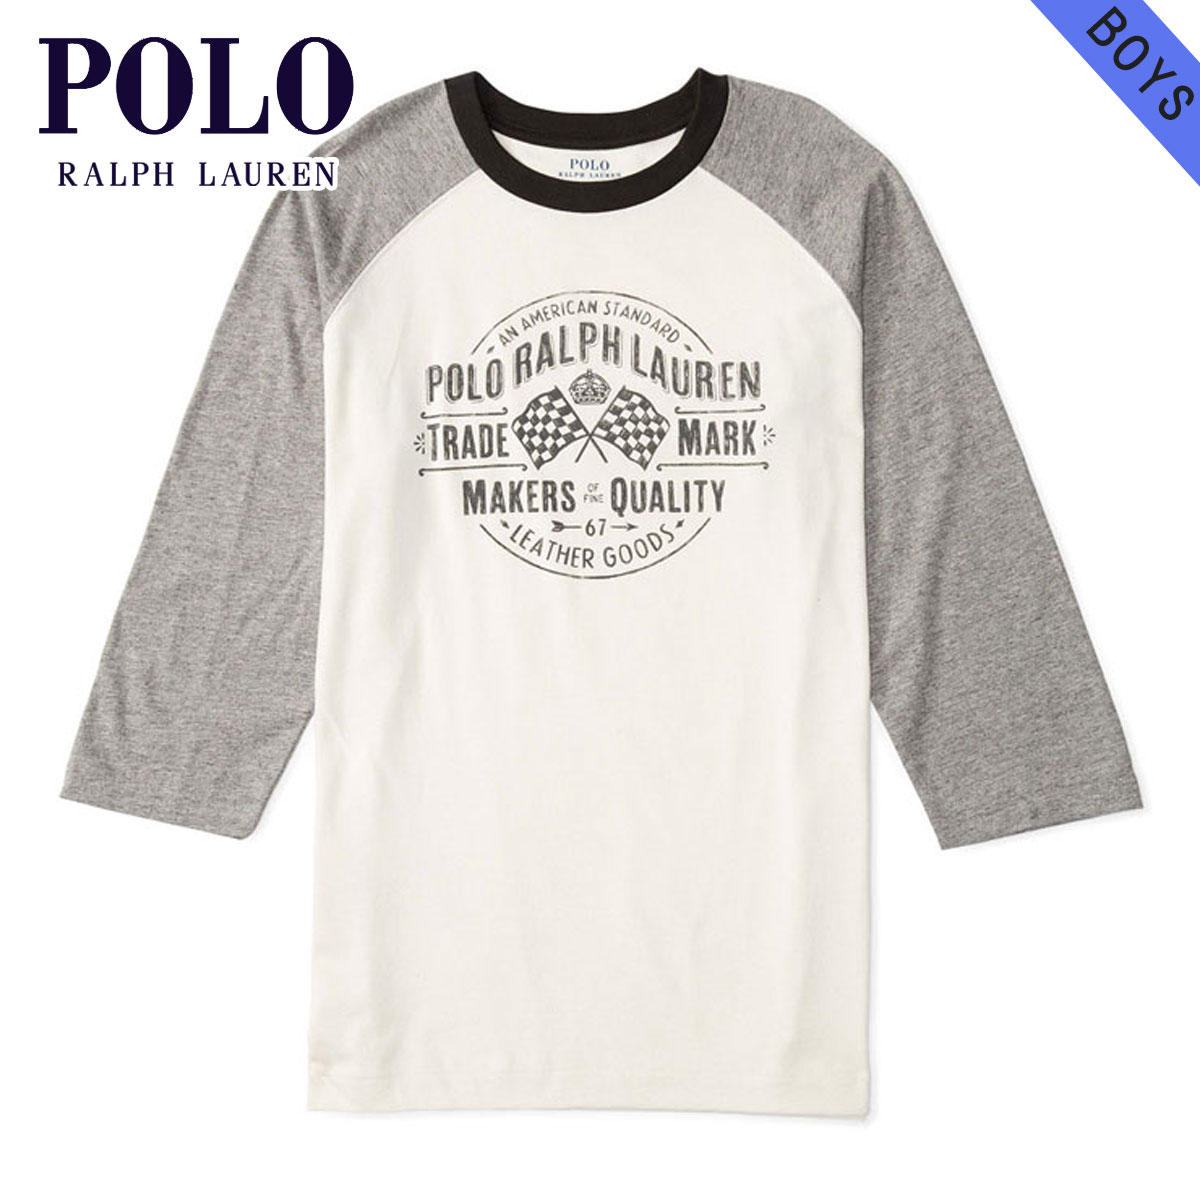 0aebbaf3c59c7 20%OFF sale polo Ralph Lauren kids POLO RALPH LAUREN CHILDREN regular  article children s clothes Boys long sleeves T-shirt COTTON GRAPHIC  BASEBALL TEE ...